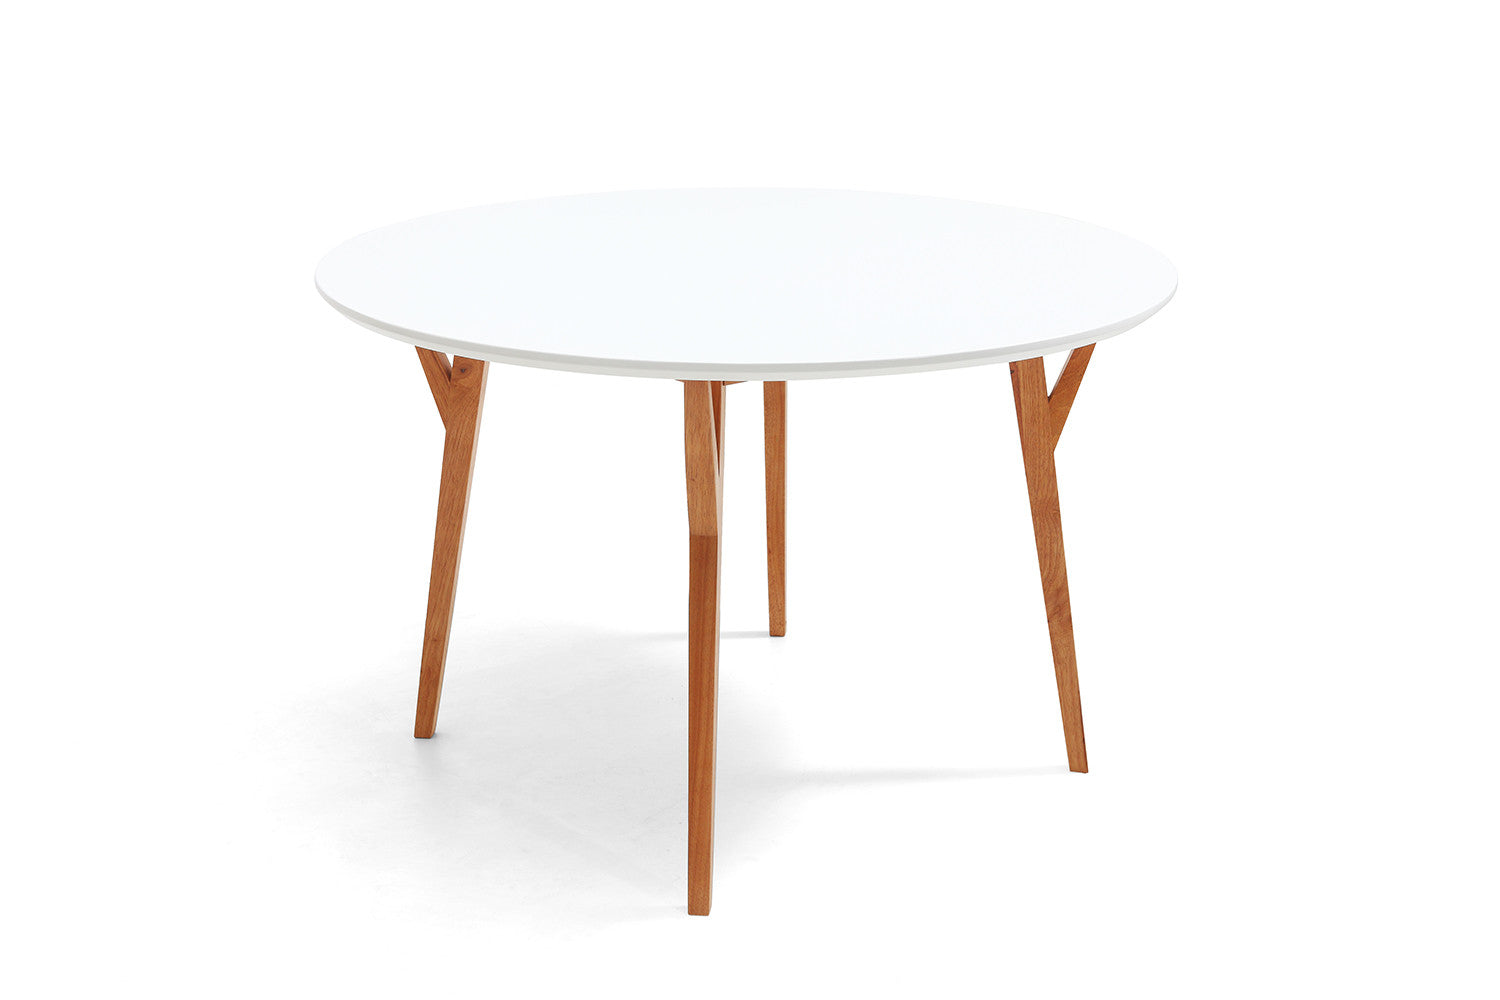 Table de salle manger ronde design scandinave moesa for Xooon table salle a manger